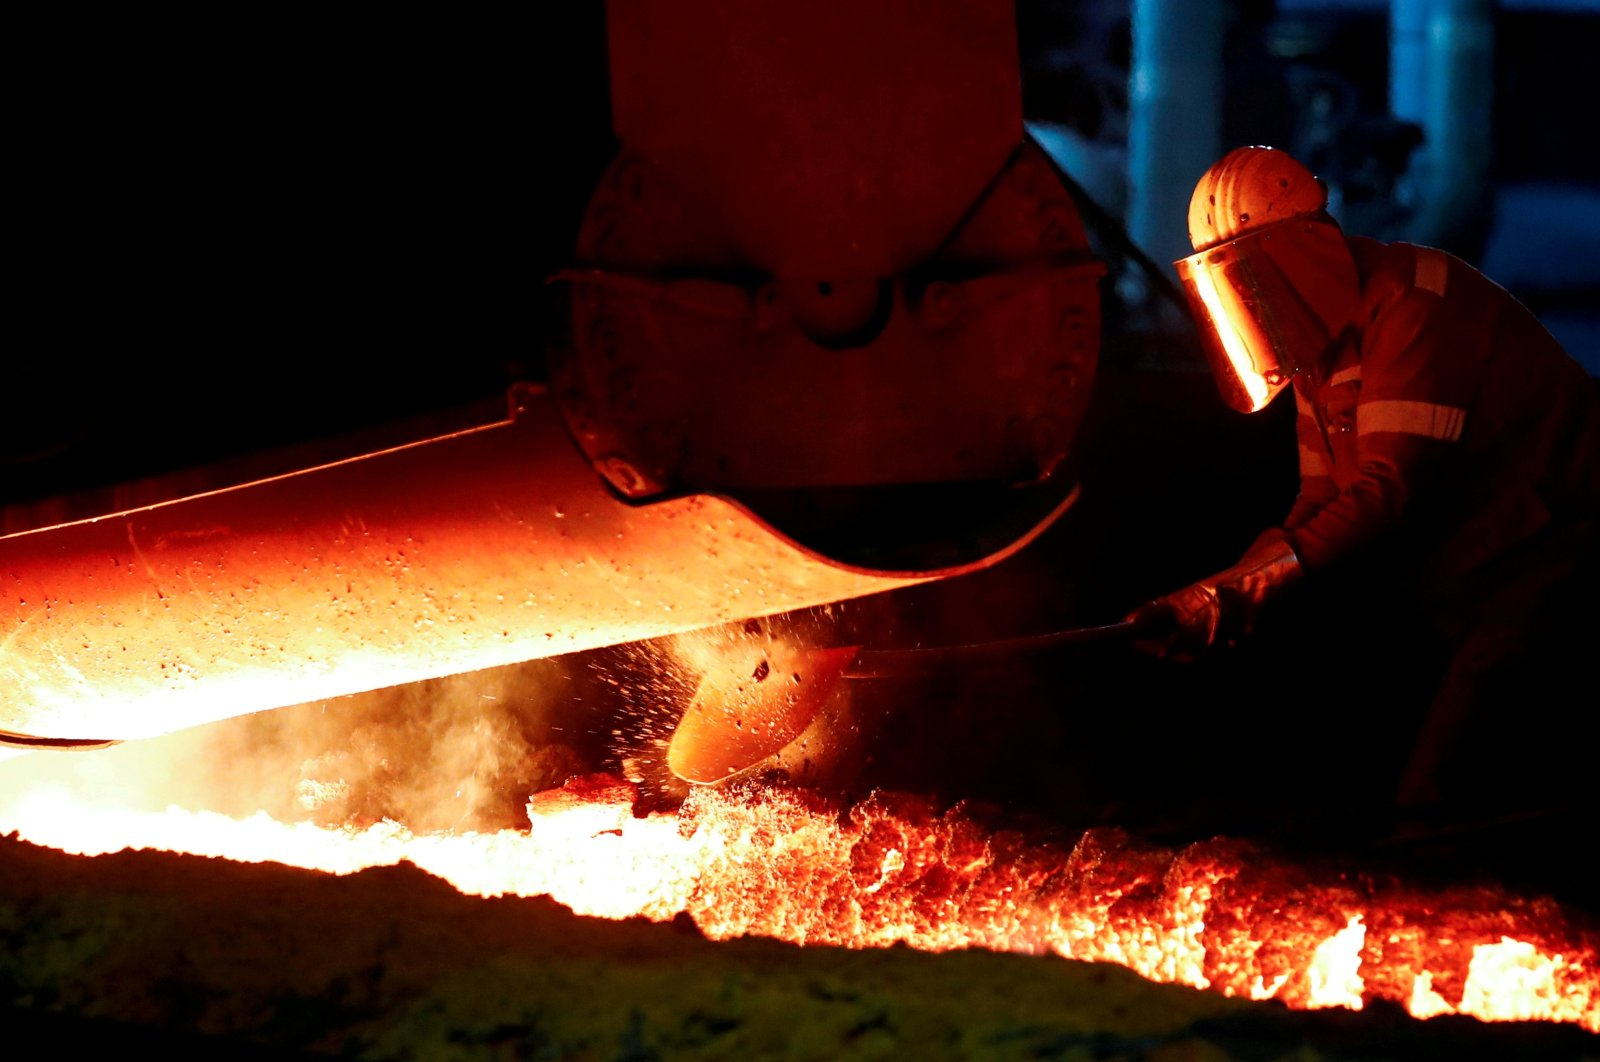 A steelworker of Germany's industrial conglomerate ThyssenKrupp AG works near a blast furnace at Germany's largest steel mill in Duisburg, Germany, Jan. 28, 2019. (Reuters Photo)